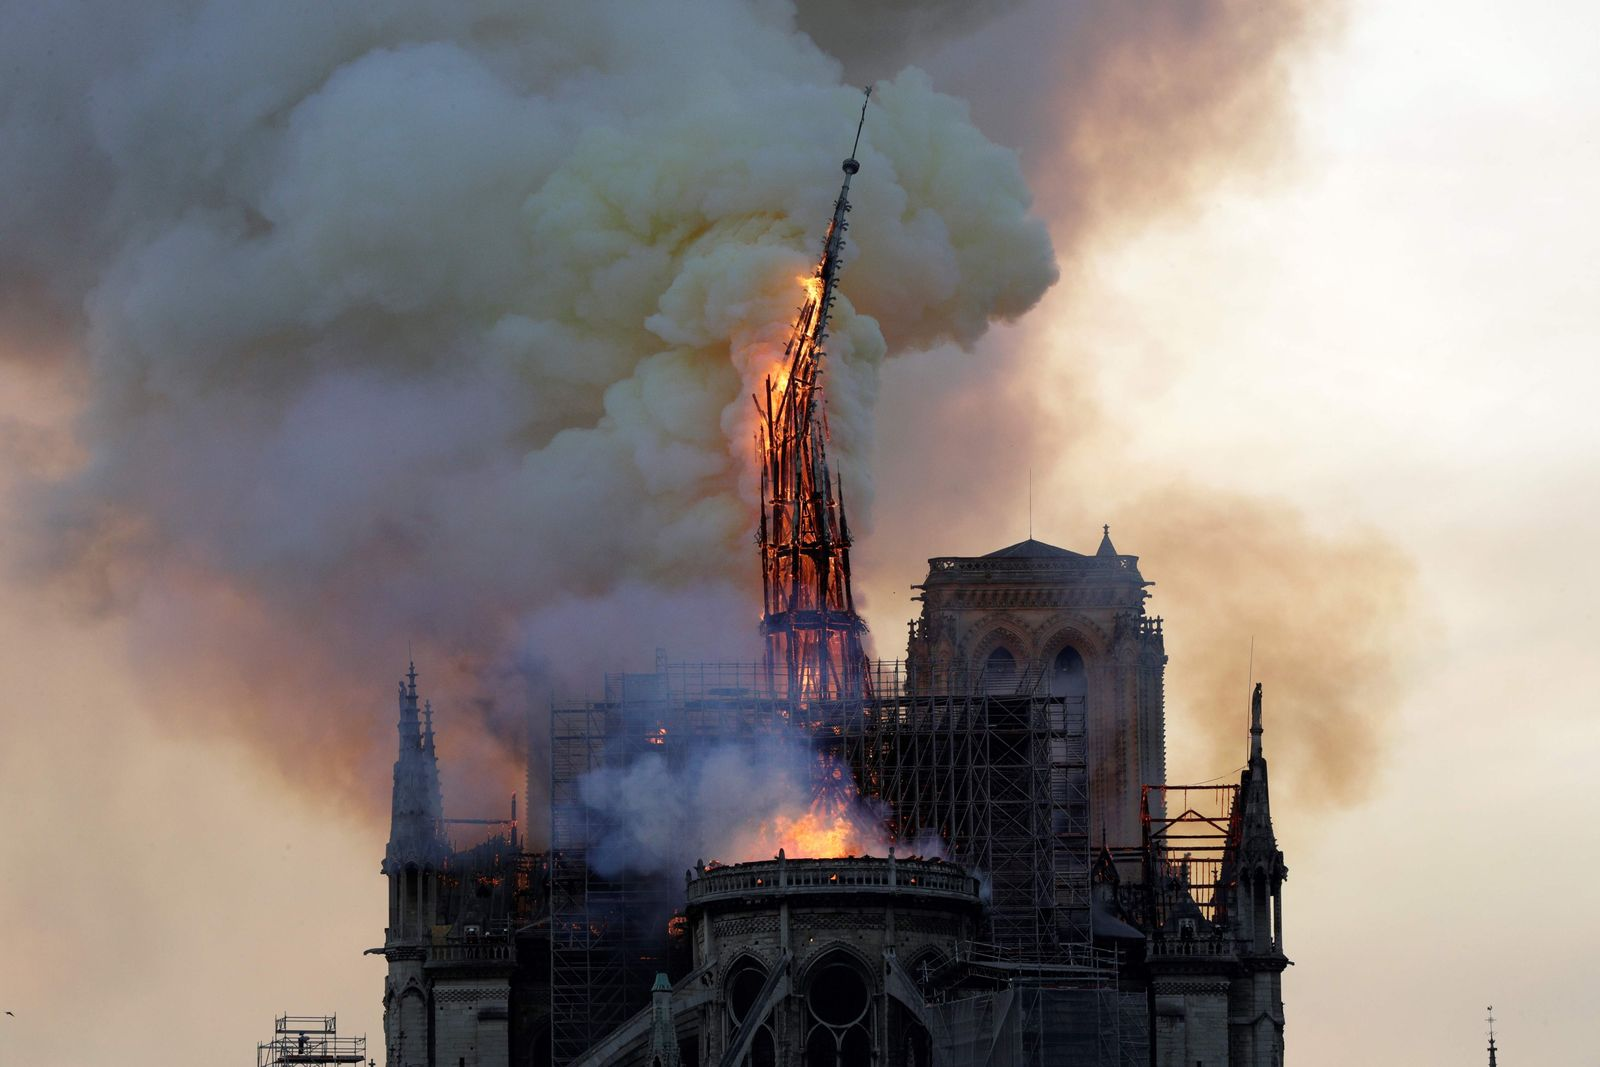 FILES-FRANCE-FIRE-NOTRE DAME